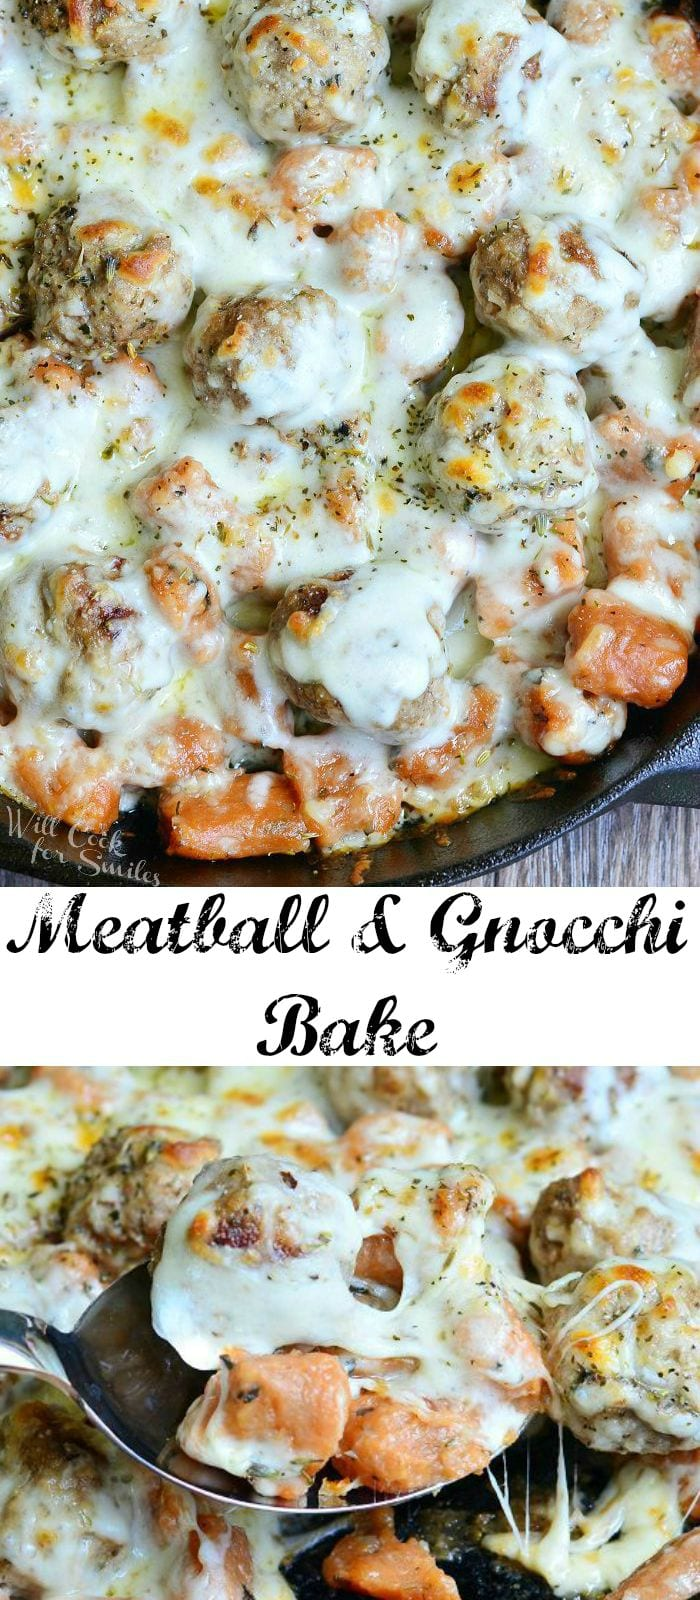 Meatball and Gnocchi Bake from willcookforsmiles.com